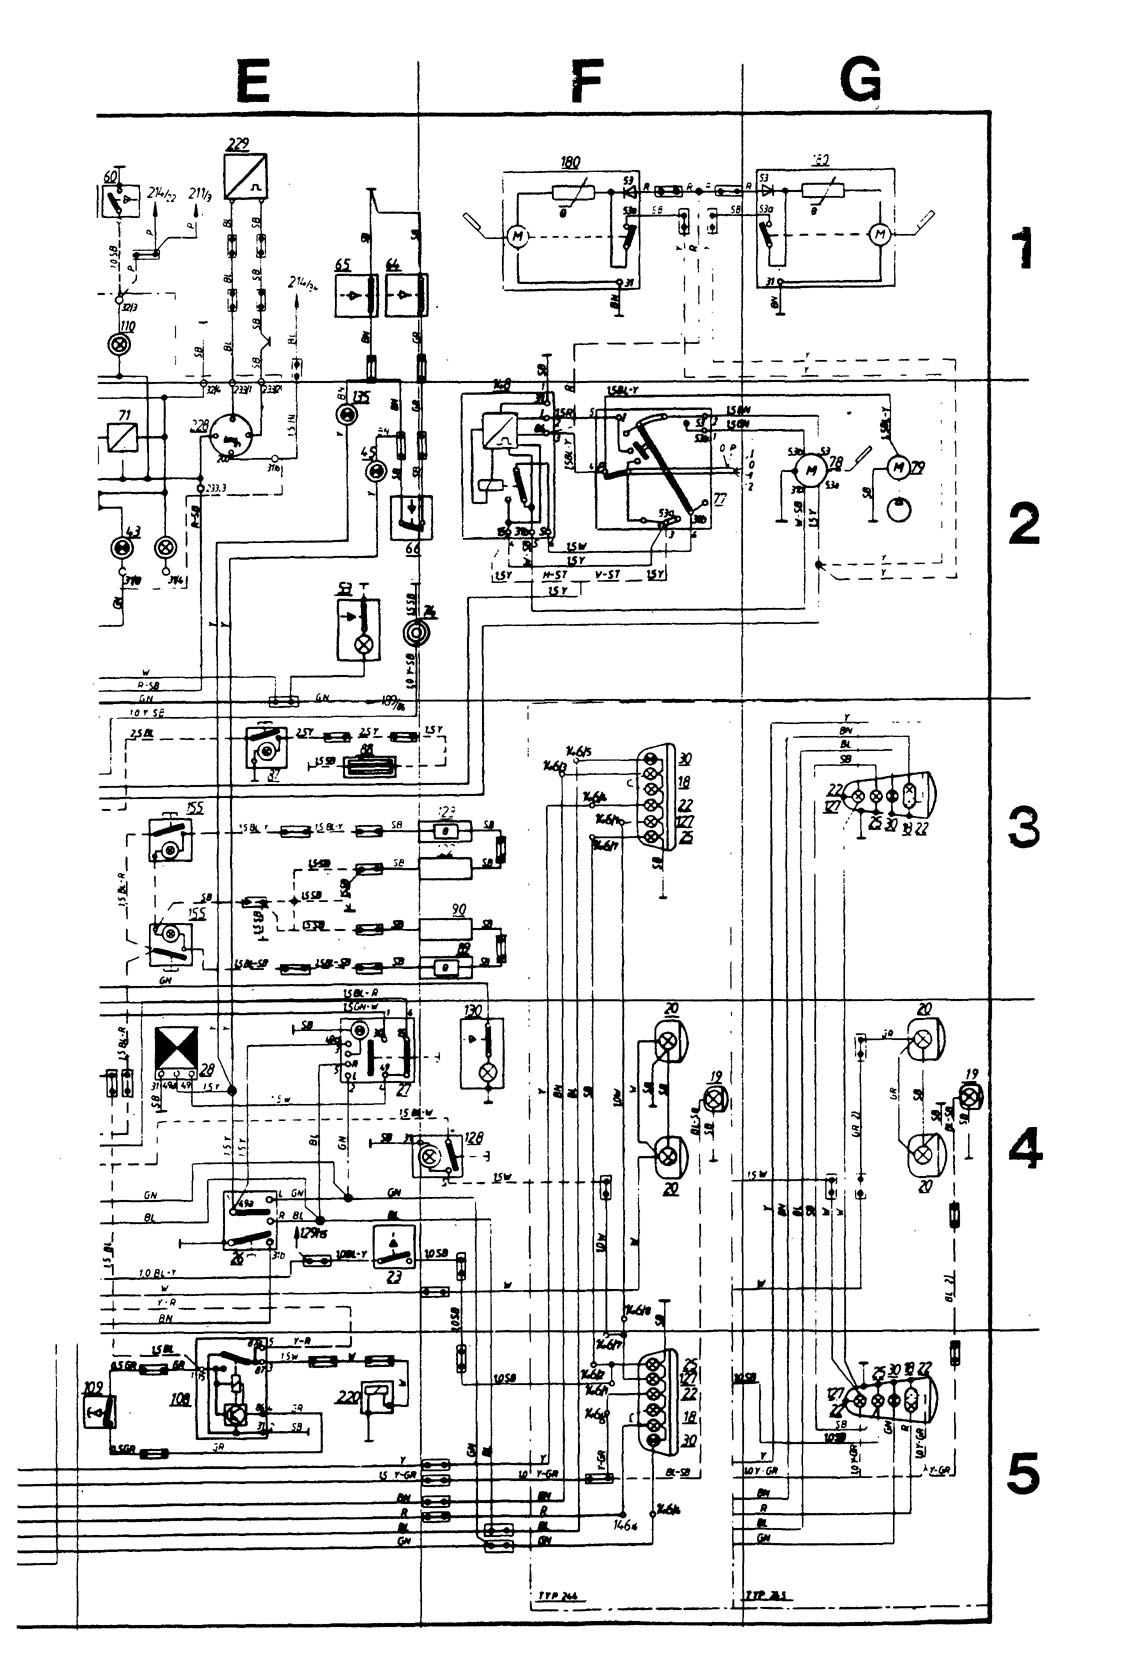 ... Volvo 244 – wiring diagram instrumentation (part 2) ...